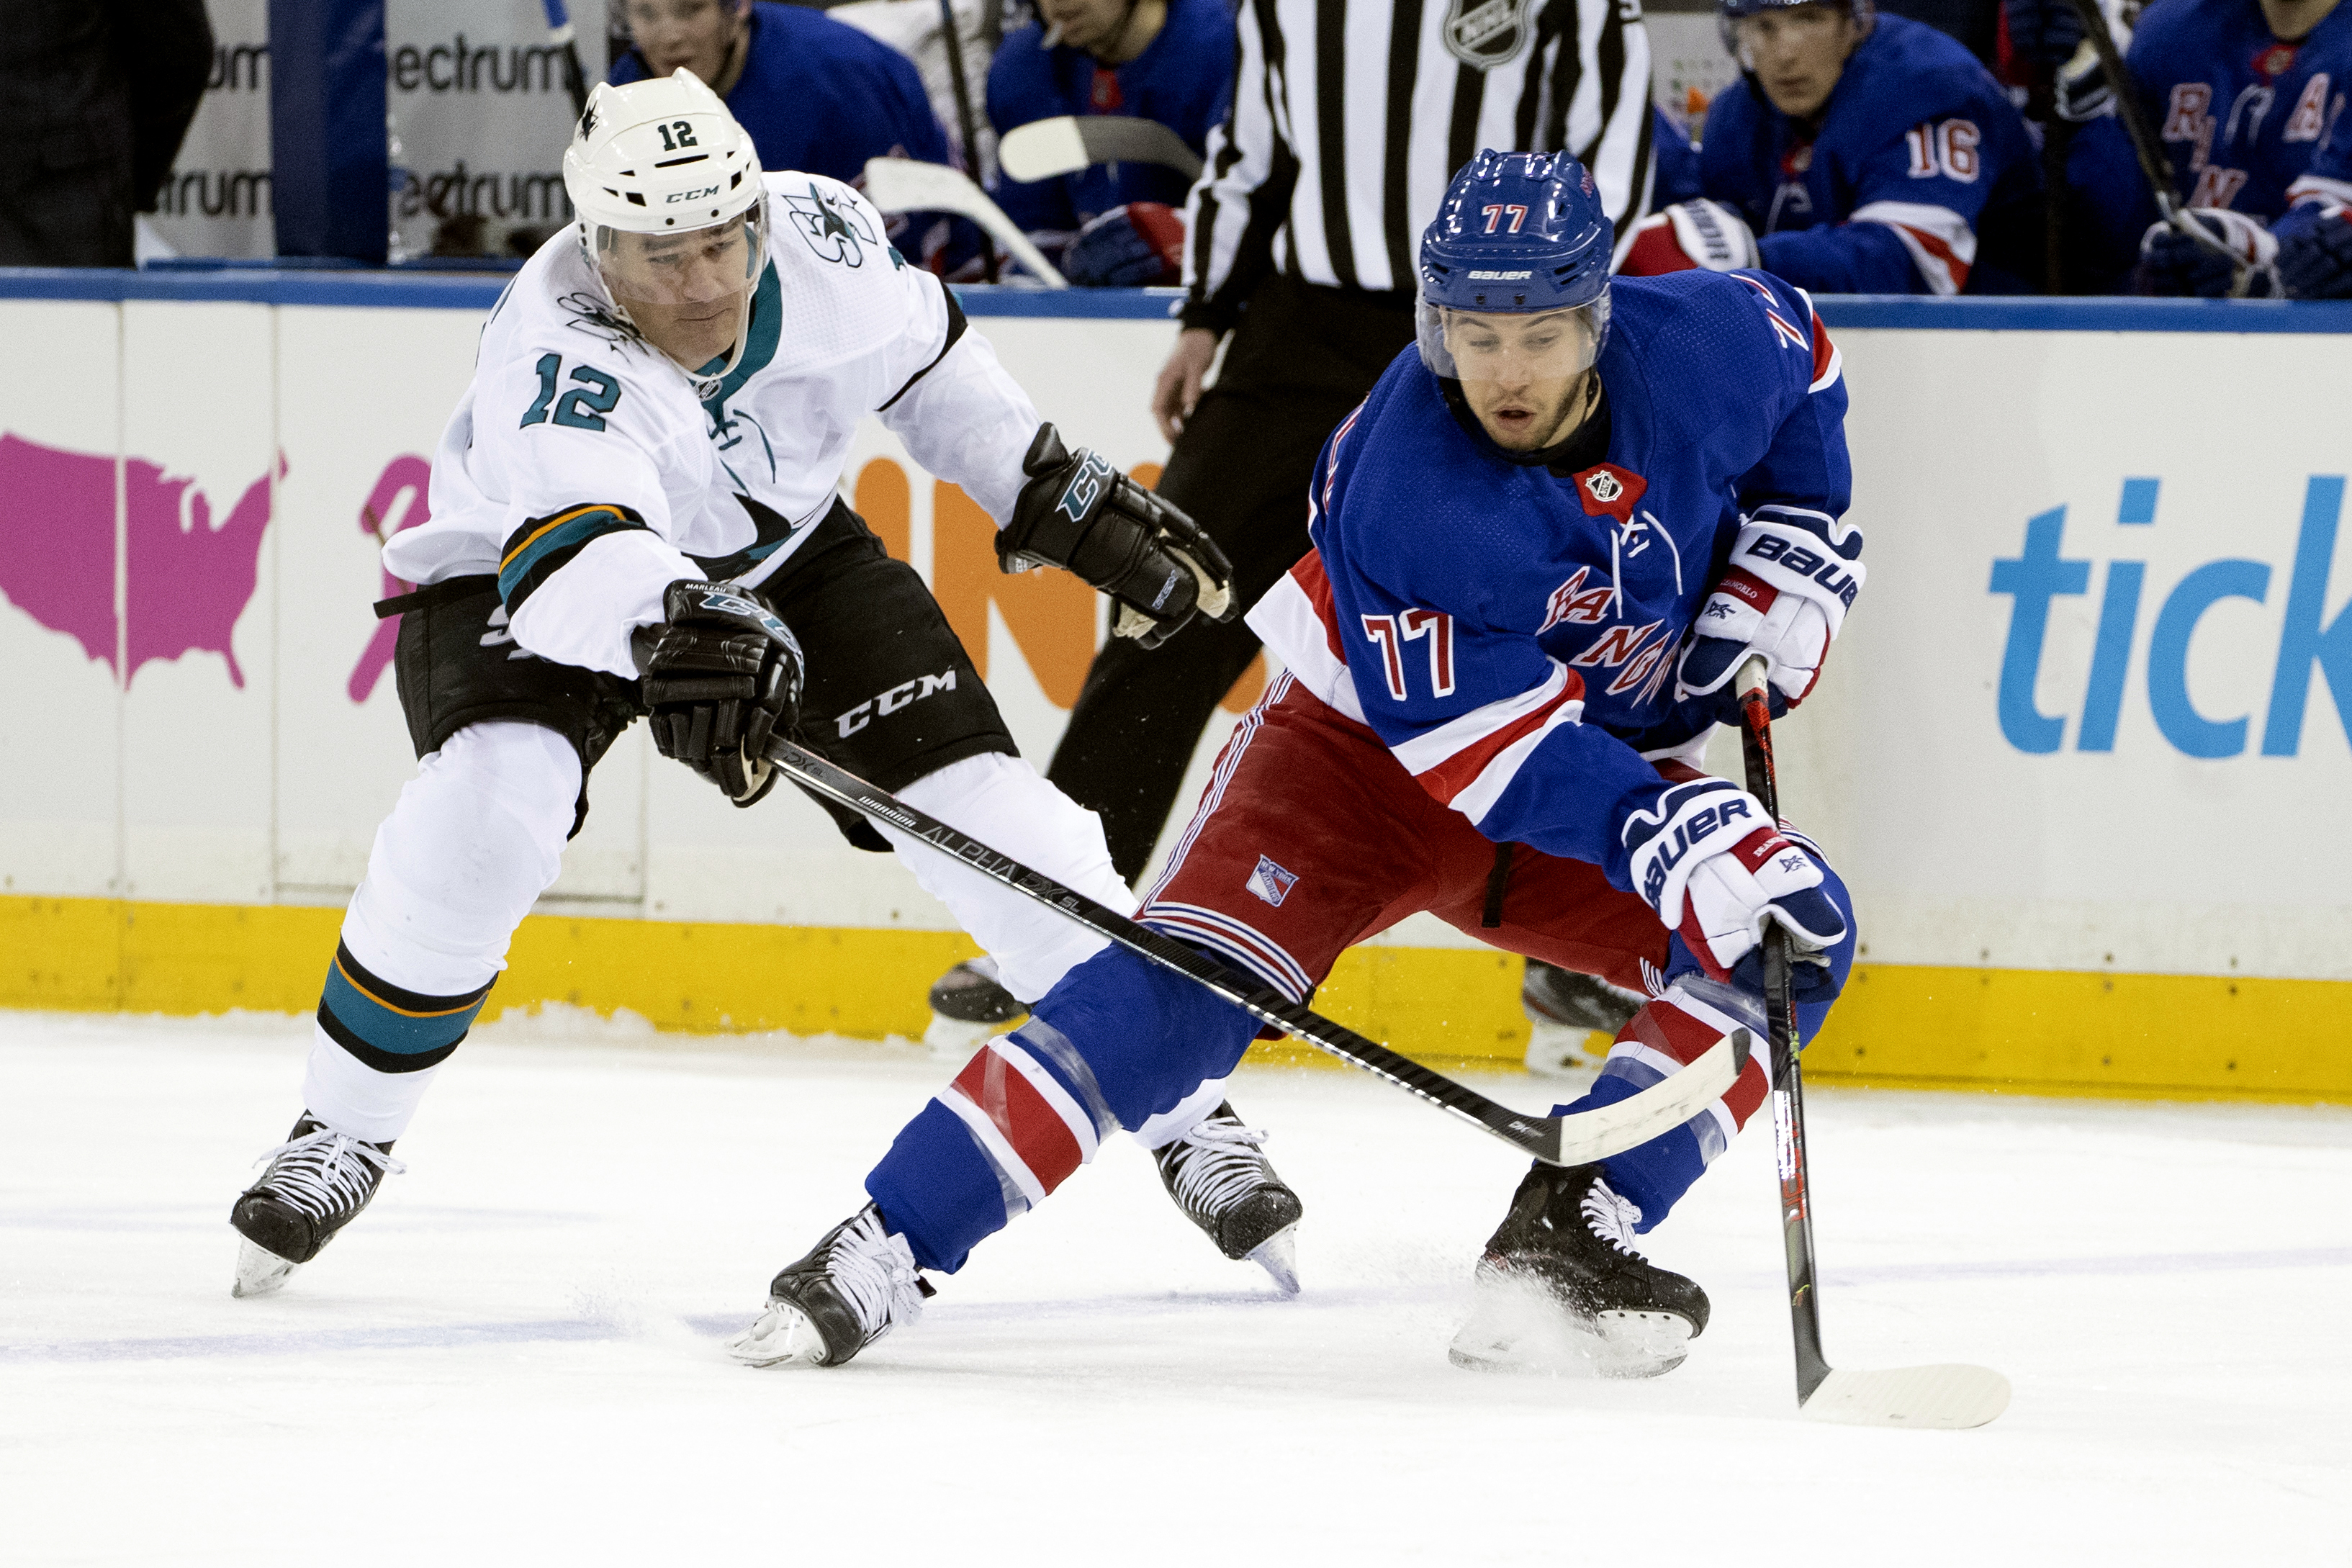 Penguins acquire veteran Patrick Marleau from Sharks